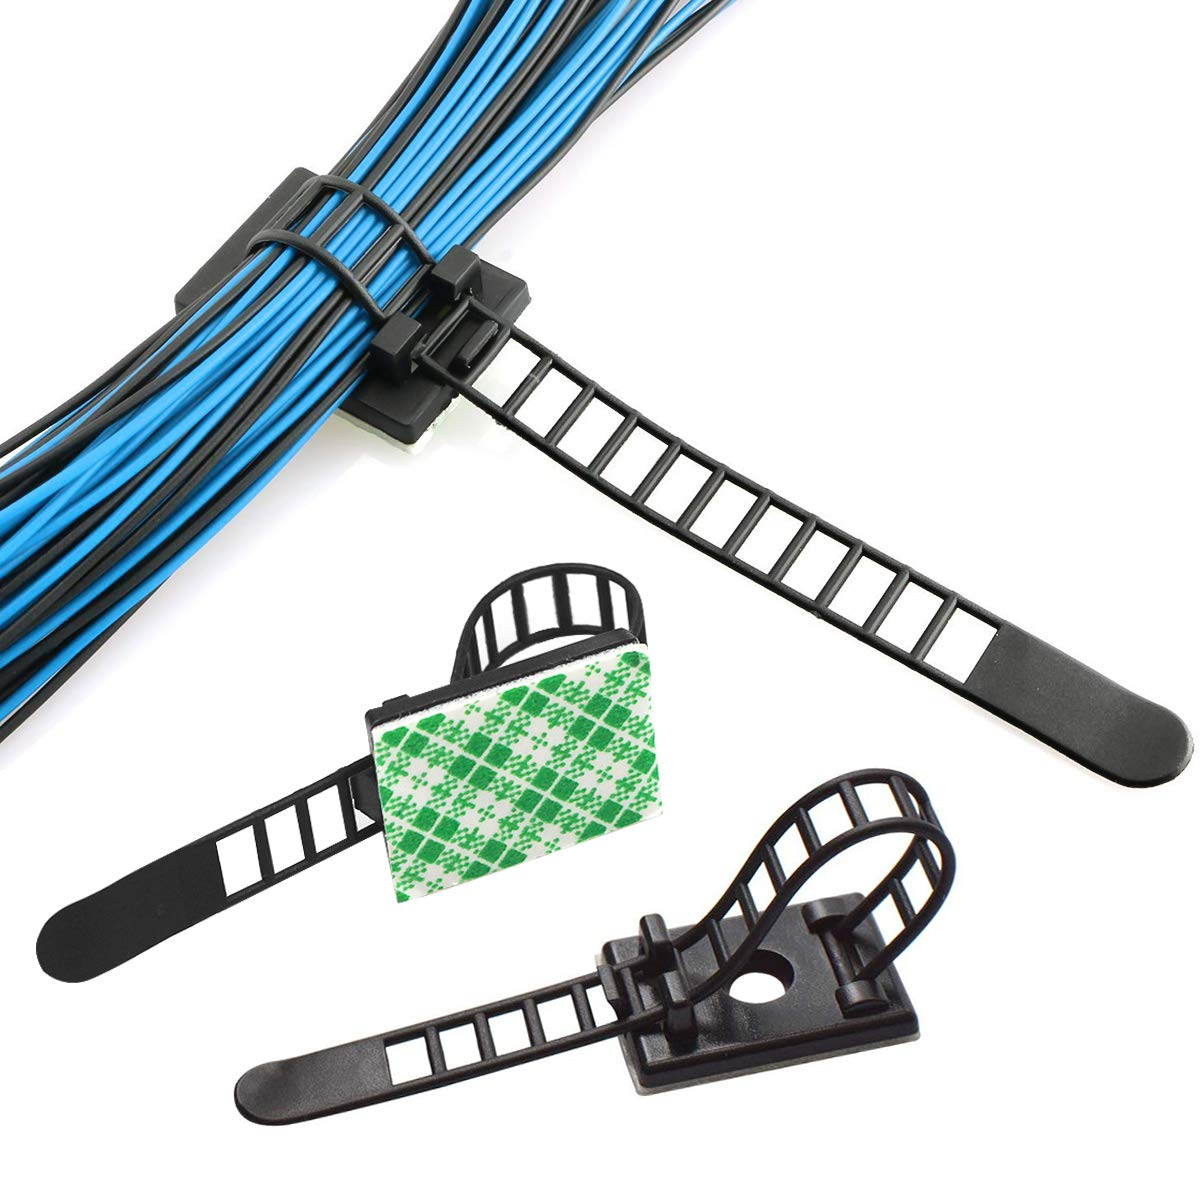 Coolty 100 Pack Adjustable Self-Adhesive Nylon Cable Ties Cable Clamps with Optional Screw Cord Clamps for Wire Management